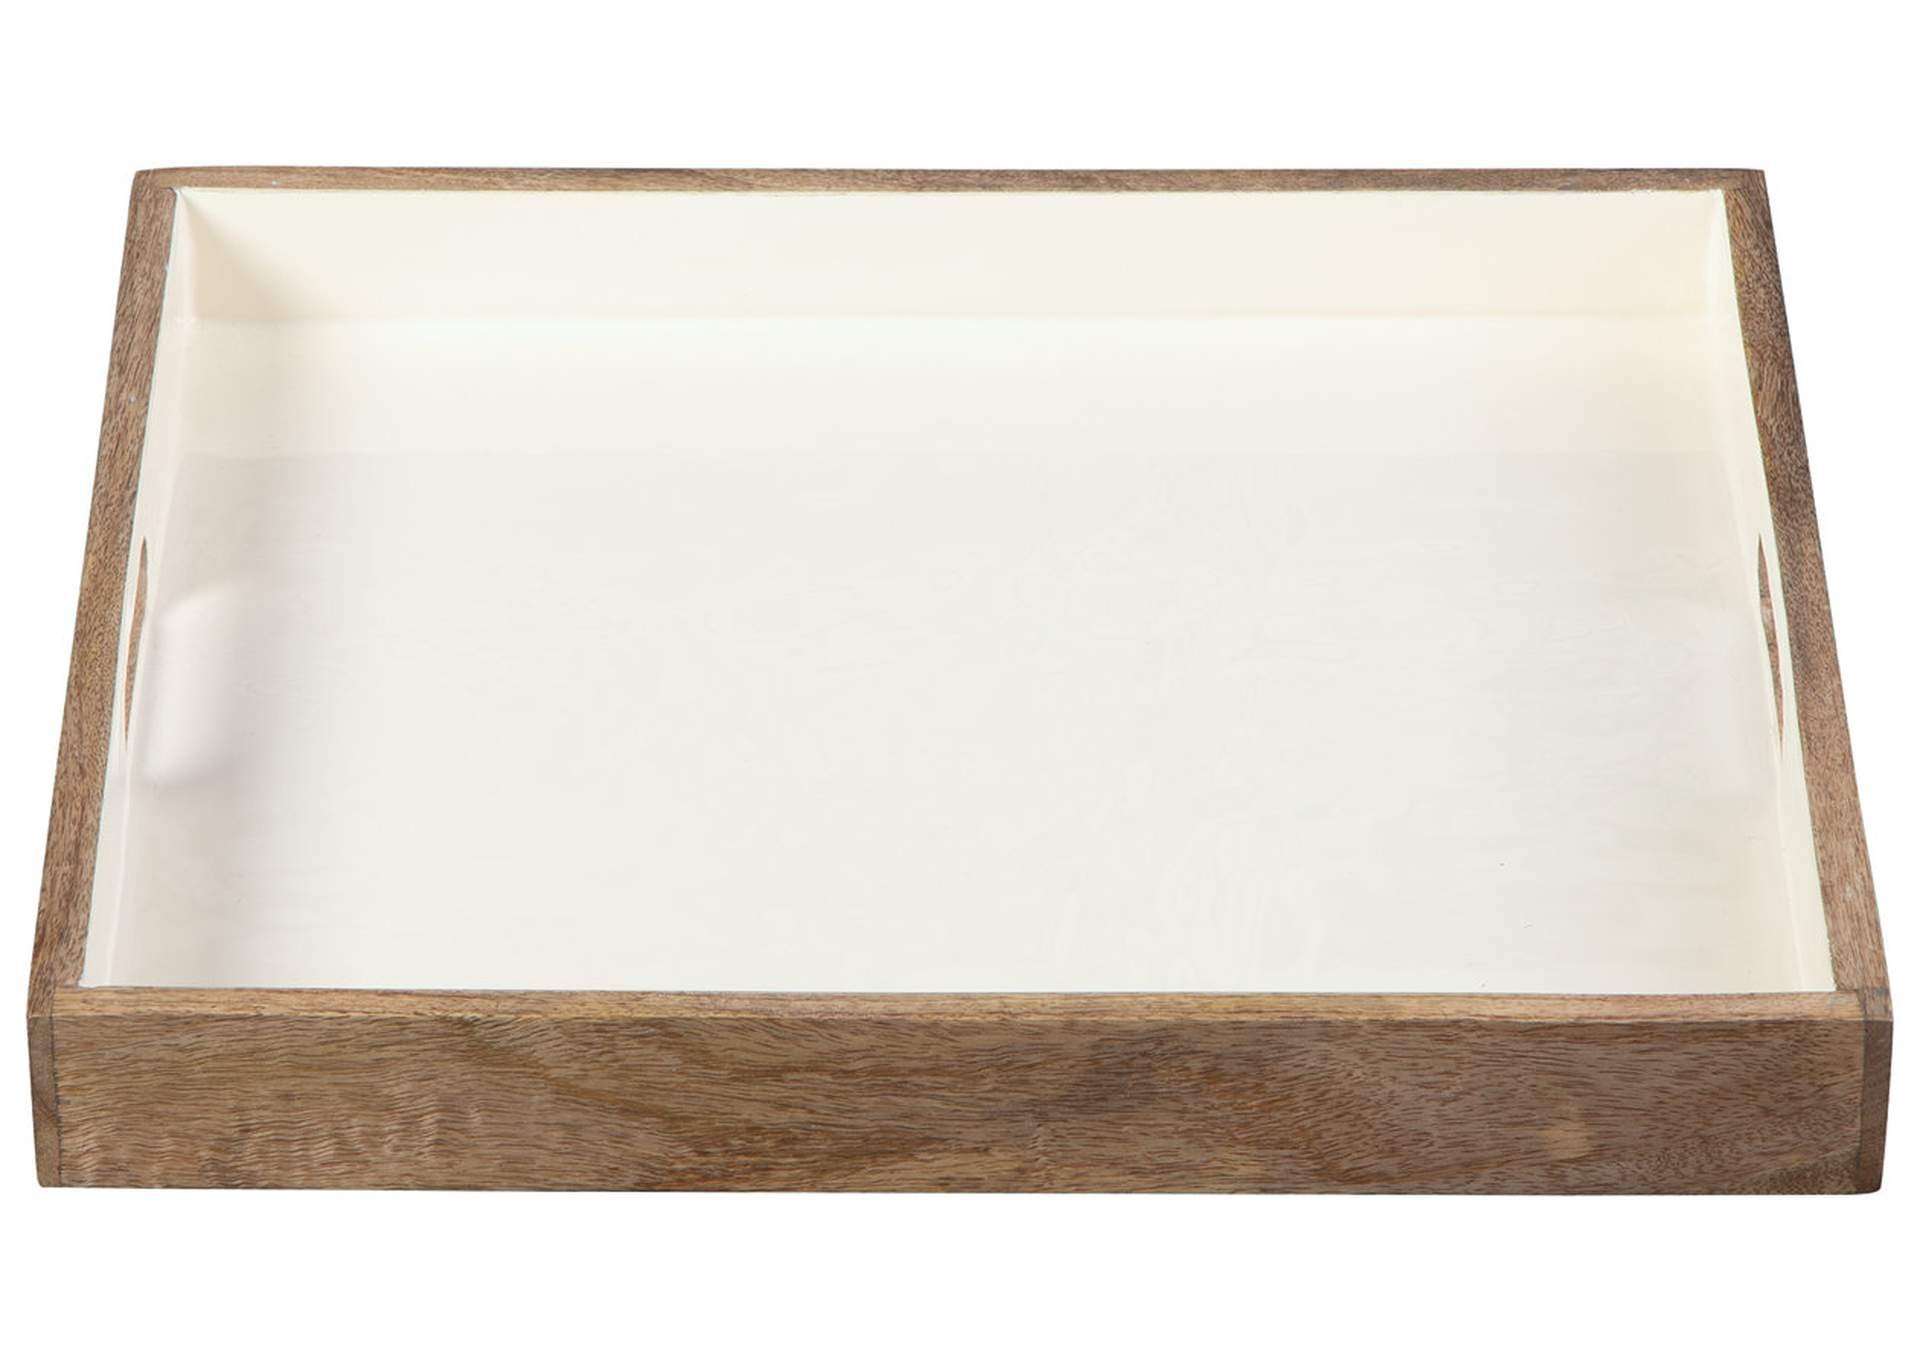 MORIA Natural/White Tray,Signature Design By Ashley